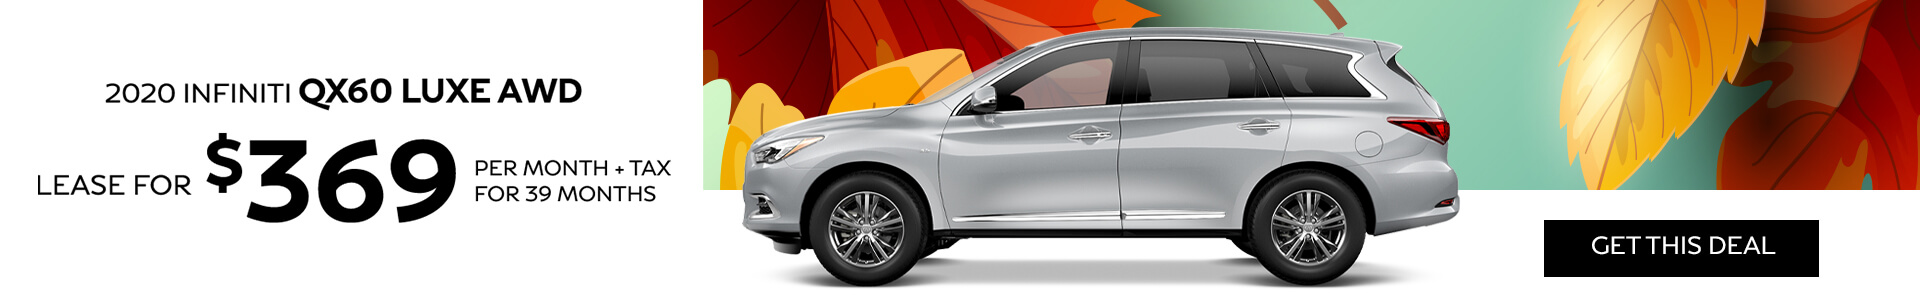 QX60 LUXE - Lease for $369